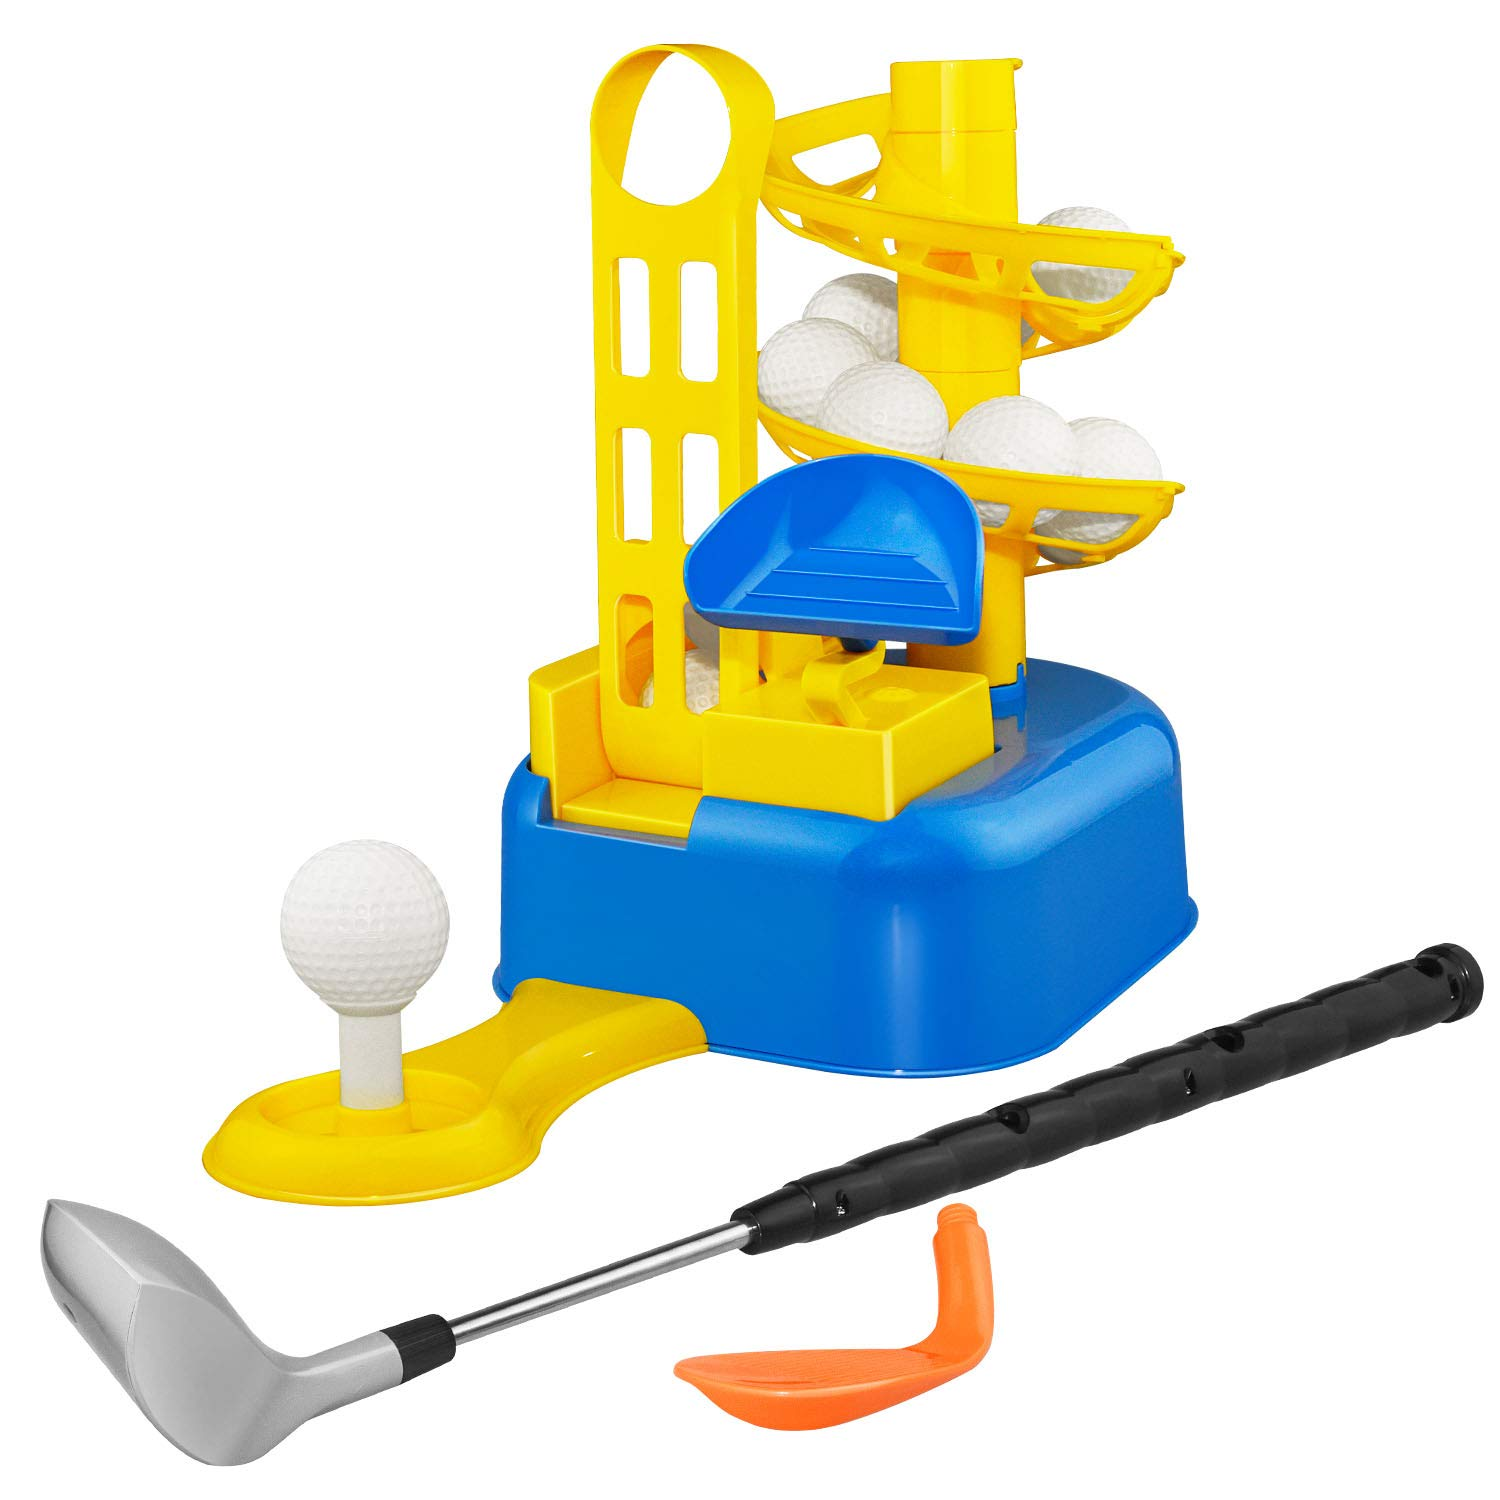 Outdoor Toys for 3-8 Year Old Boys, dmazing Golf Set For Kids 3-8 Golf Ball Game Early Educational Toys For 3-8 Year Old Boys Girls Christmas Xmas Gifts Age 3-8 Stocking Stuffers Stocking Fillers Blue by dmazing